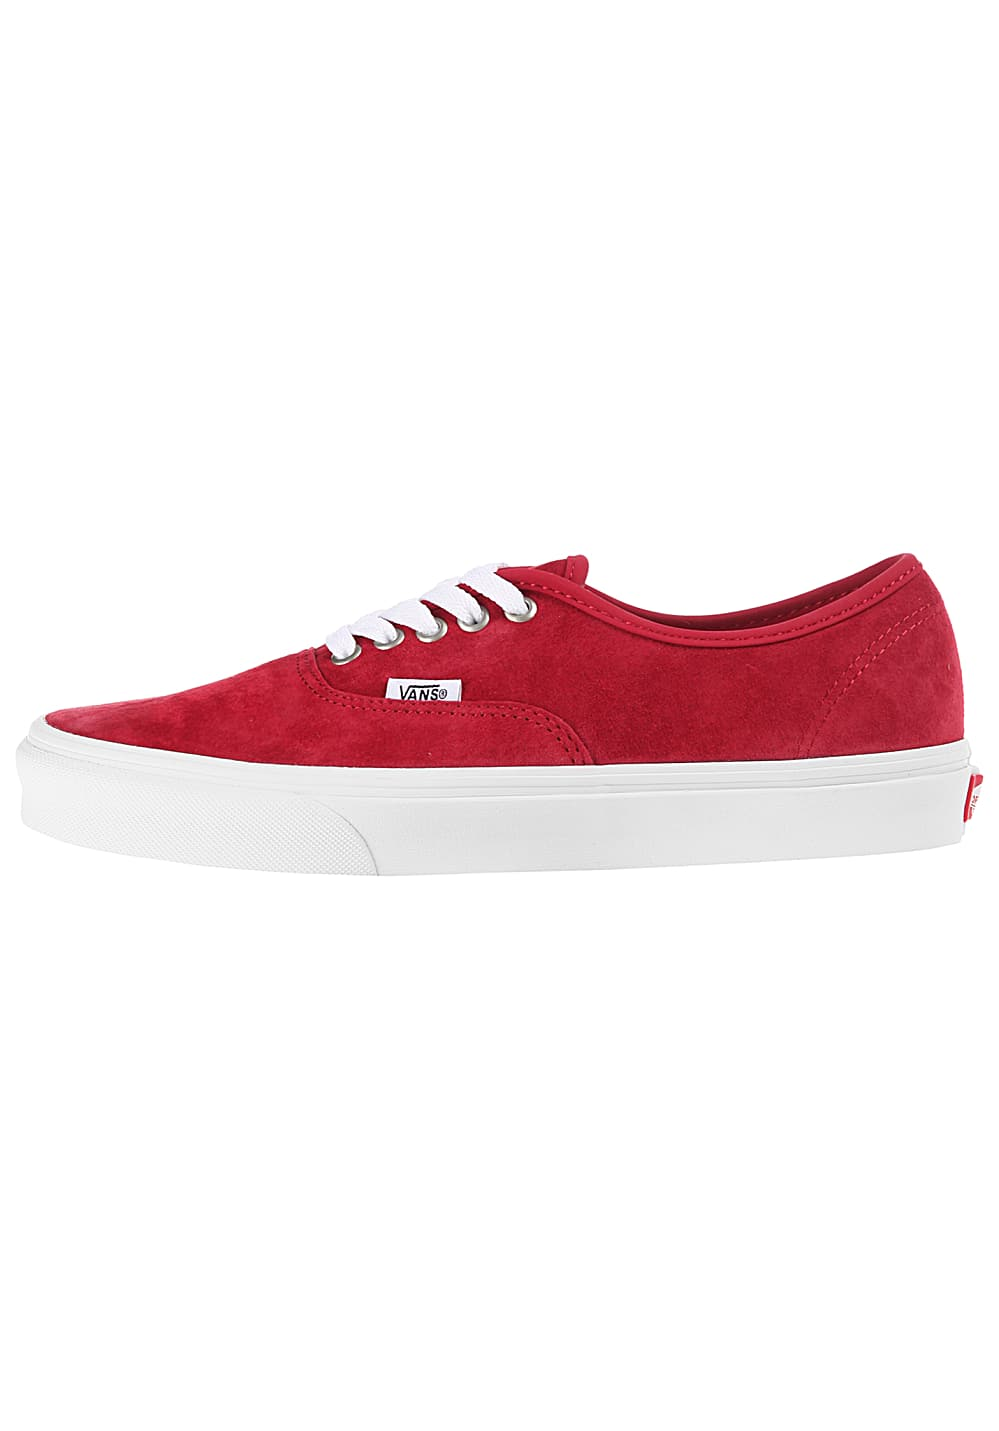 VANS Authentic Sneaker für Damen Rot